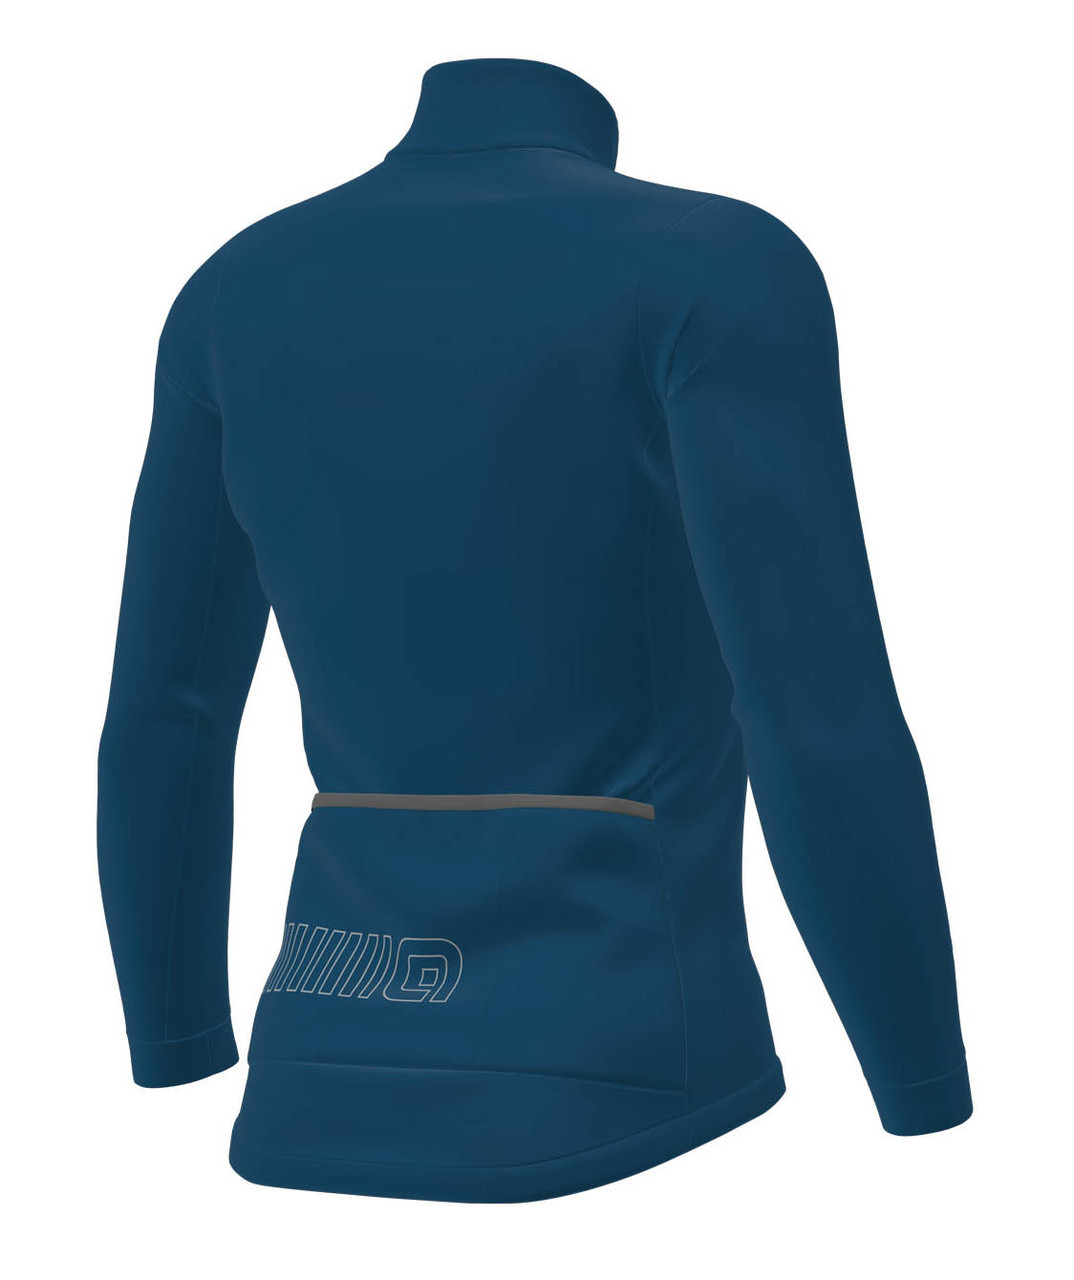 ALE' Winter Solid Thermal Blue Jacket Rear